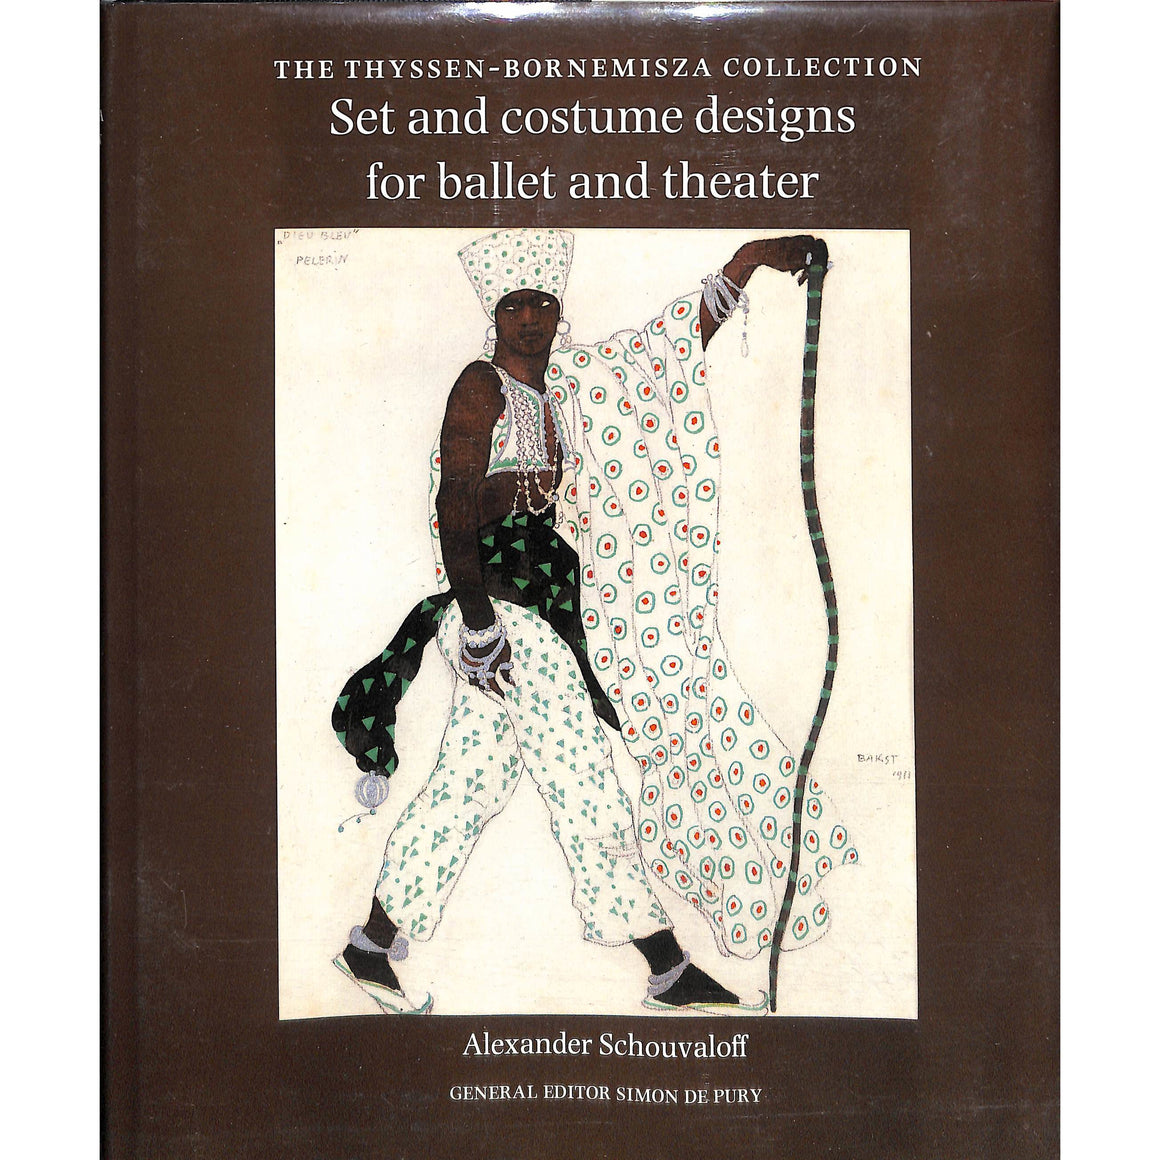 The Thyssen-Bornemisza Collection: Set and Costume Designs for Ballet and Theater